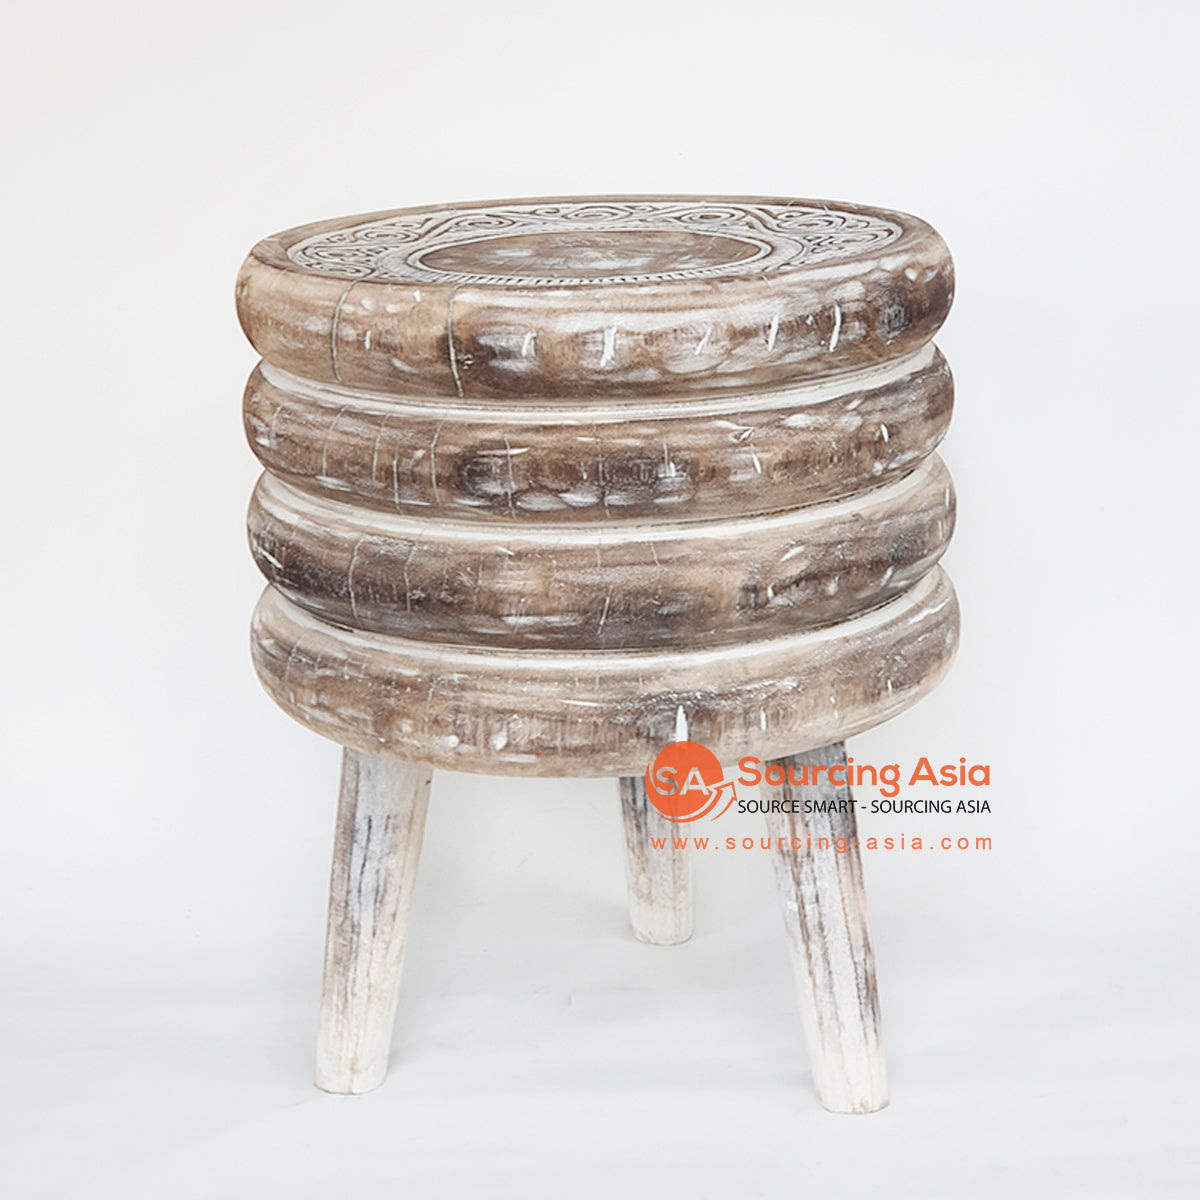 TKNC037 CARVED ETHNIC TRIBAL STYLE SIDE TABLE